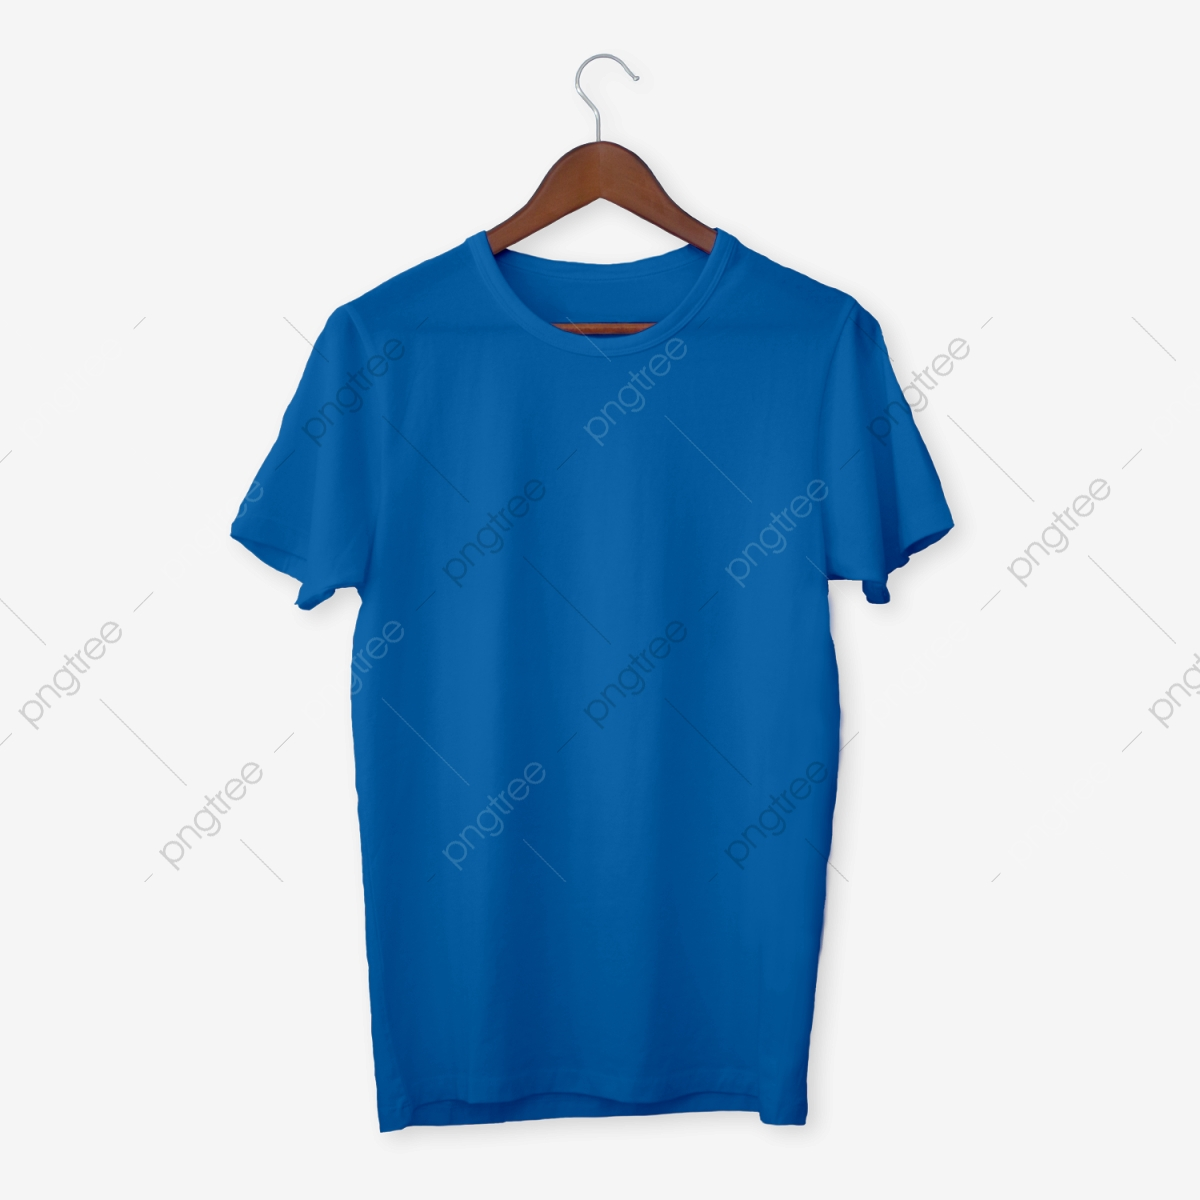 Dark Blue T Shirt Mockup Shirt T White Png Transparent Clipart